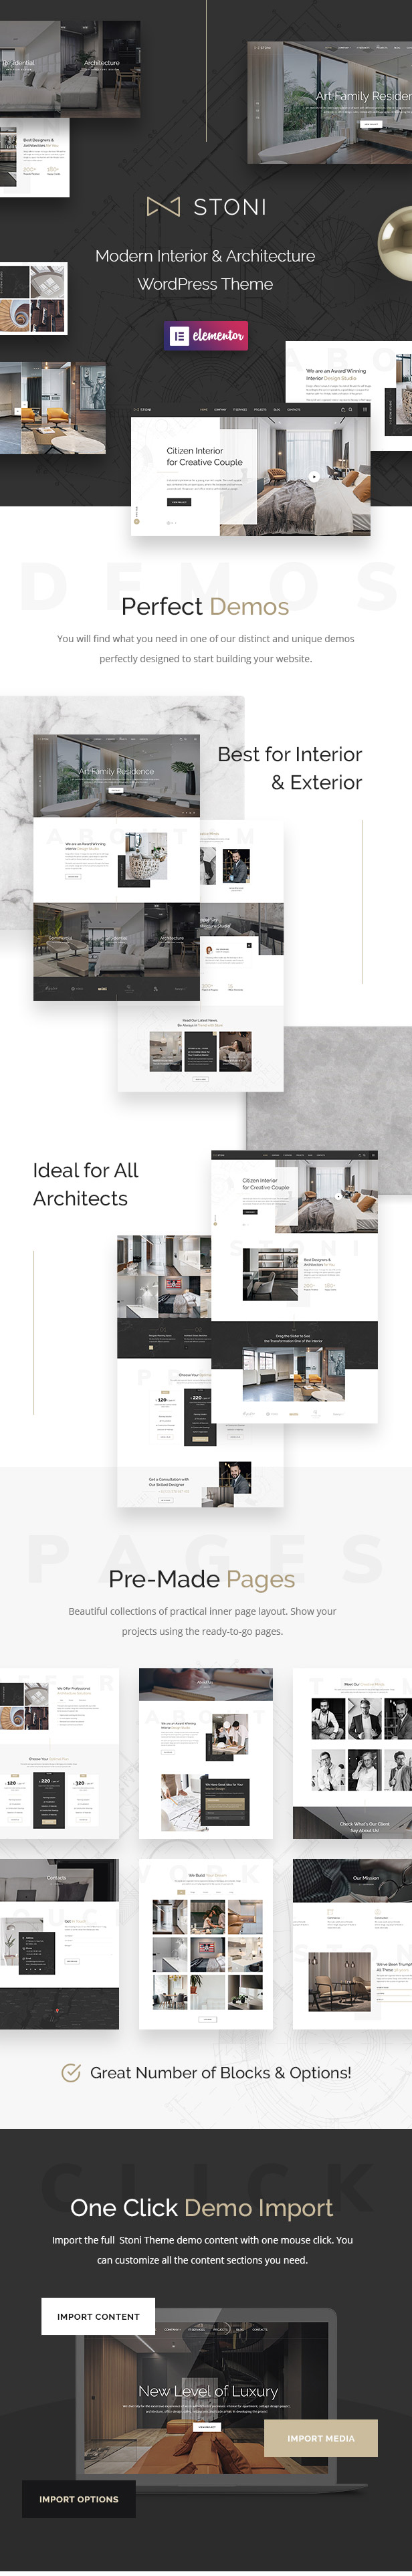 Stoni - Architecture Agency WordPress Theme - 1